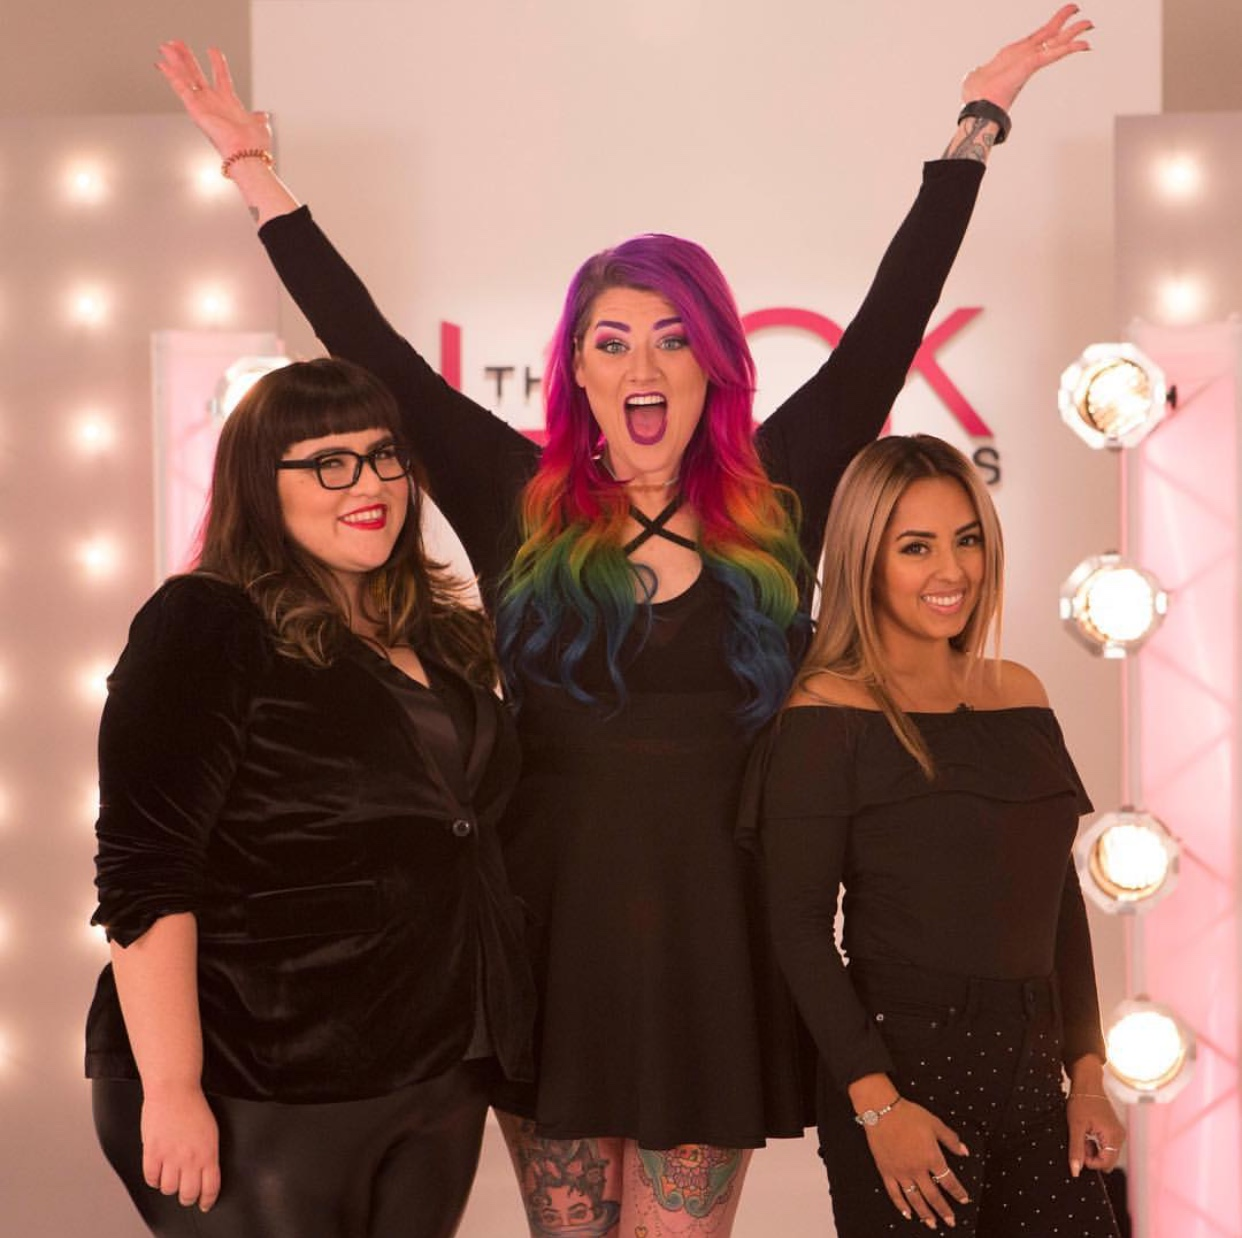 Pinup Jordan, the Capital Region's Favorite Mermaid, Makes a Splash on 'The Look: All Stars' with Fundraiser-Viewing Party at Proctors this Sunday